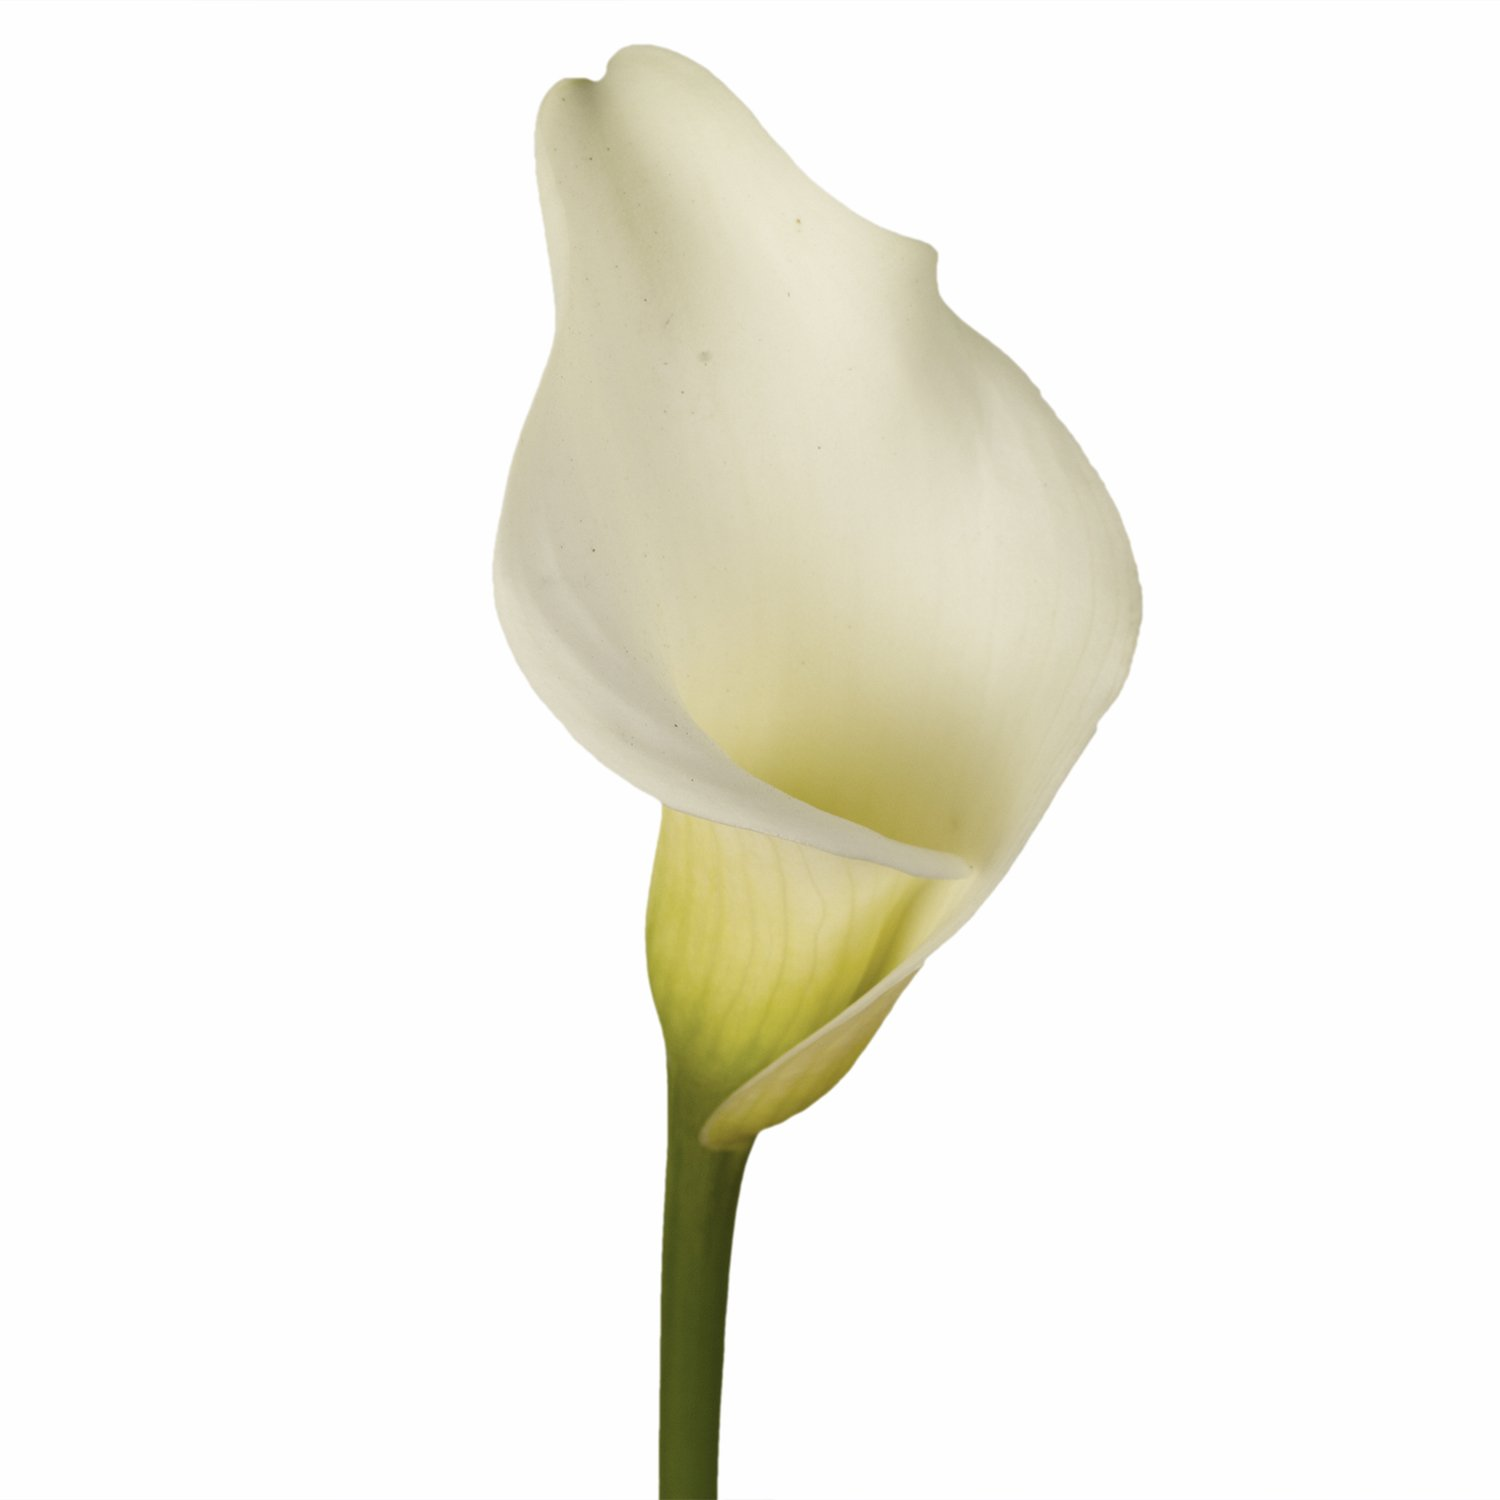 Amazon globalrose 12 stems of white calla lilies fresh amazon globalrose 12 stems of white calla lilies fresh flowers for delivery grocery gourmet food izmirmasajfo